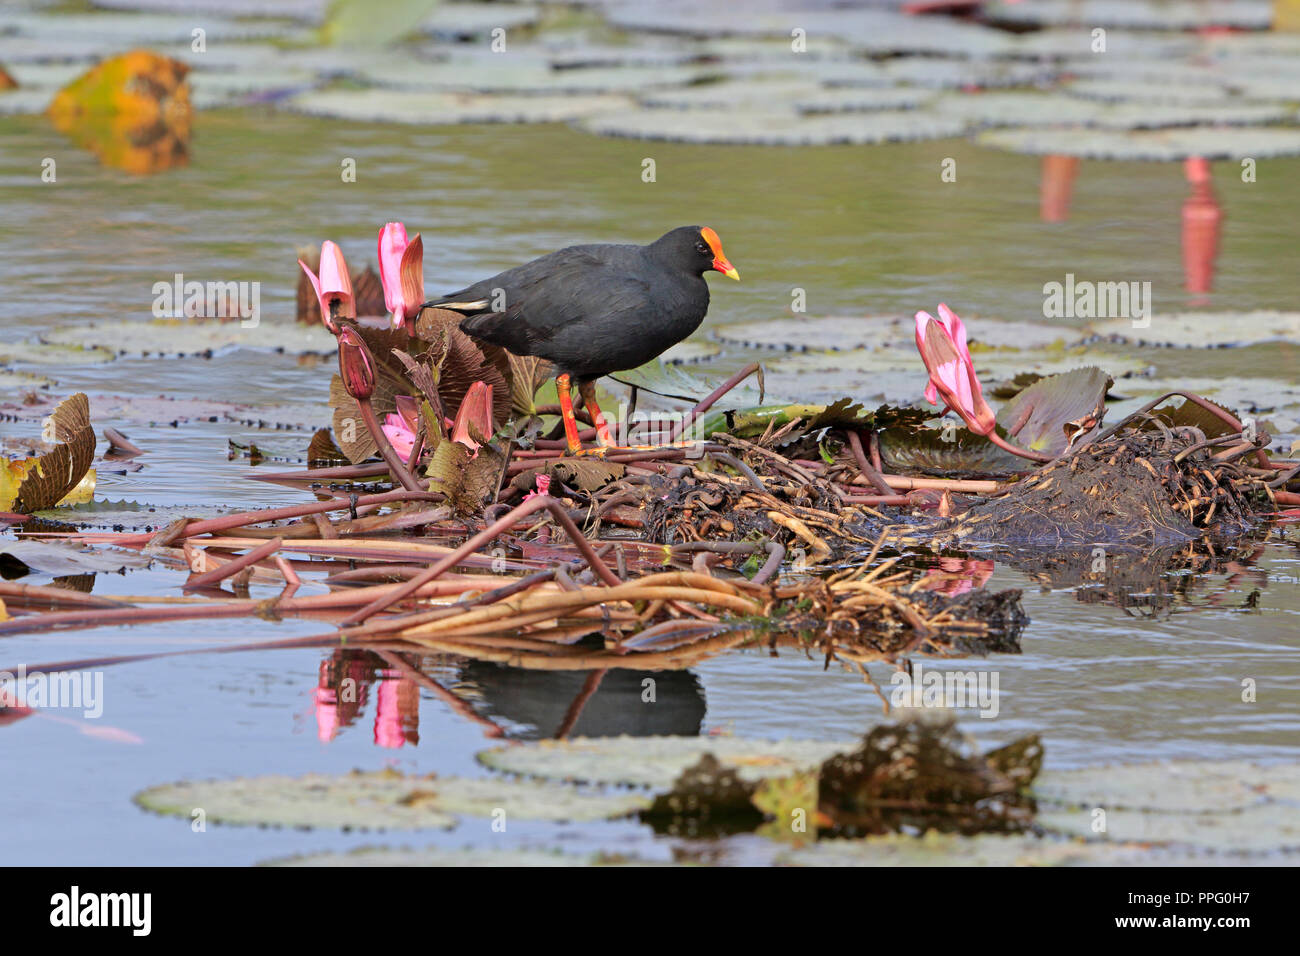 Dusky Moorhen in Port Moresby Papua New Guinea - Stock Image